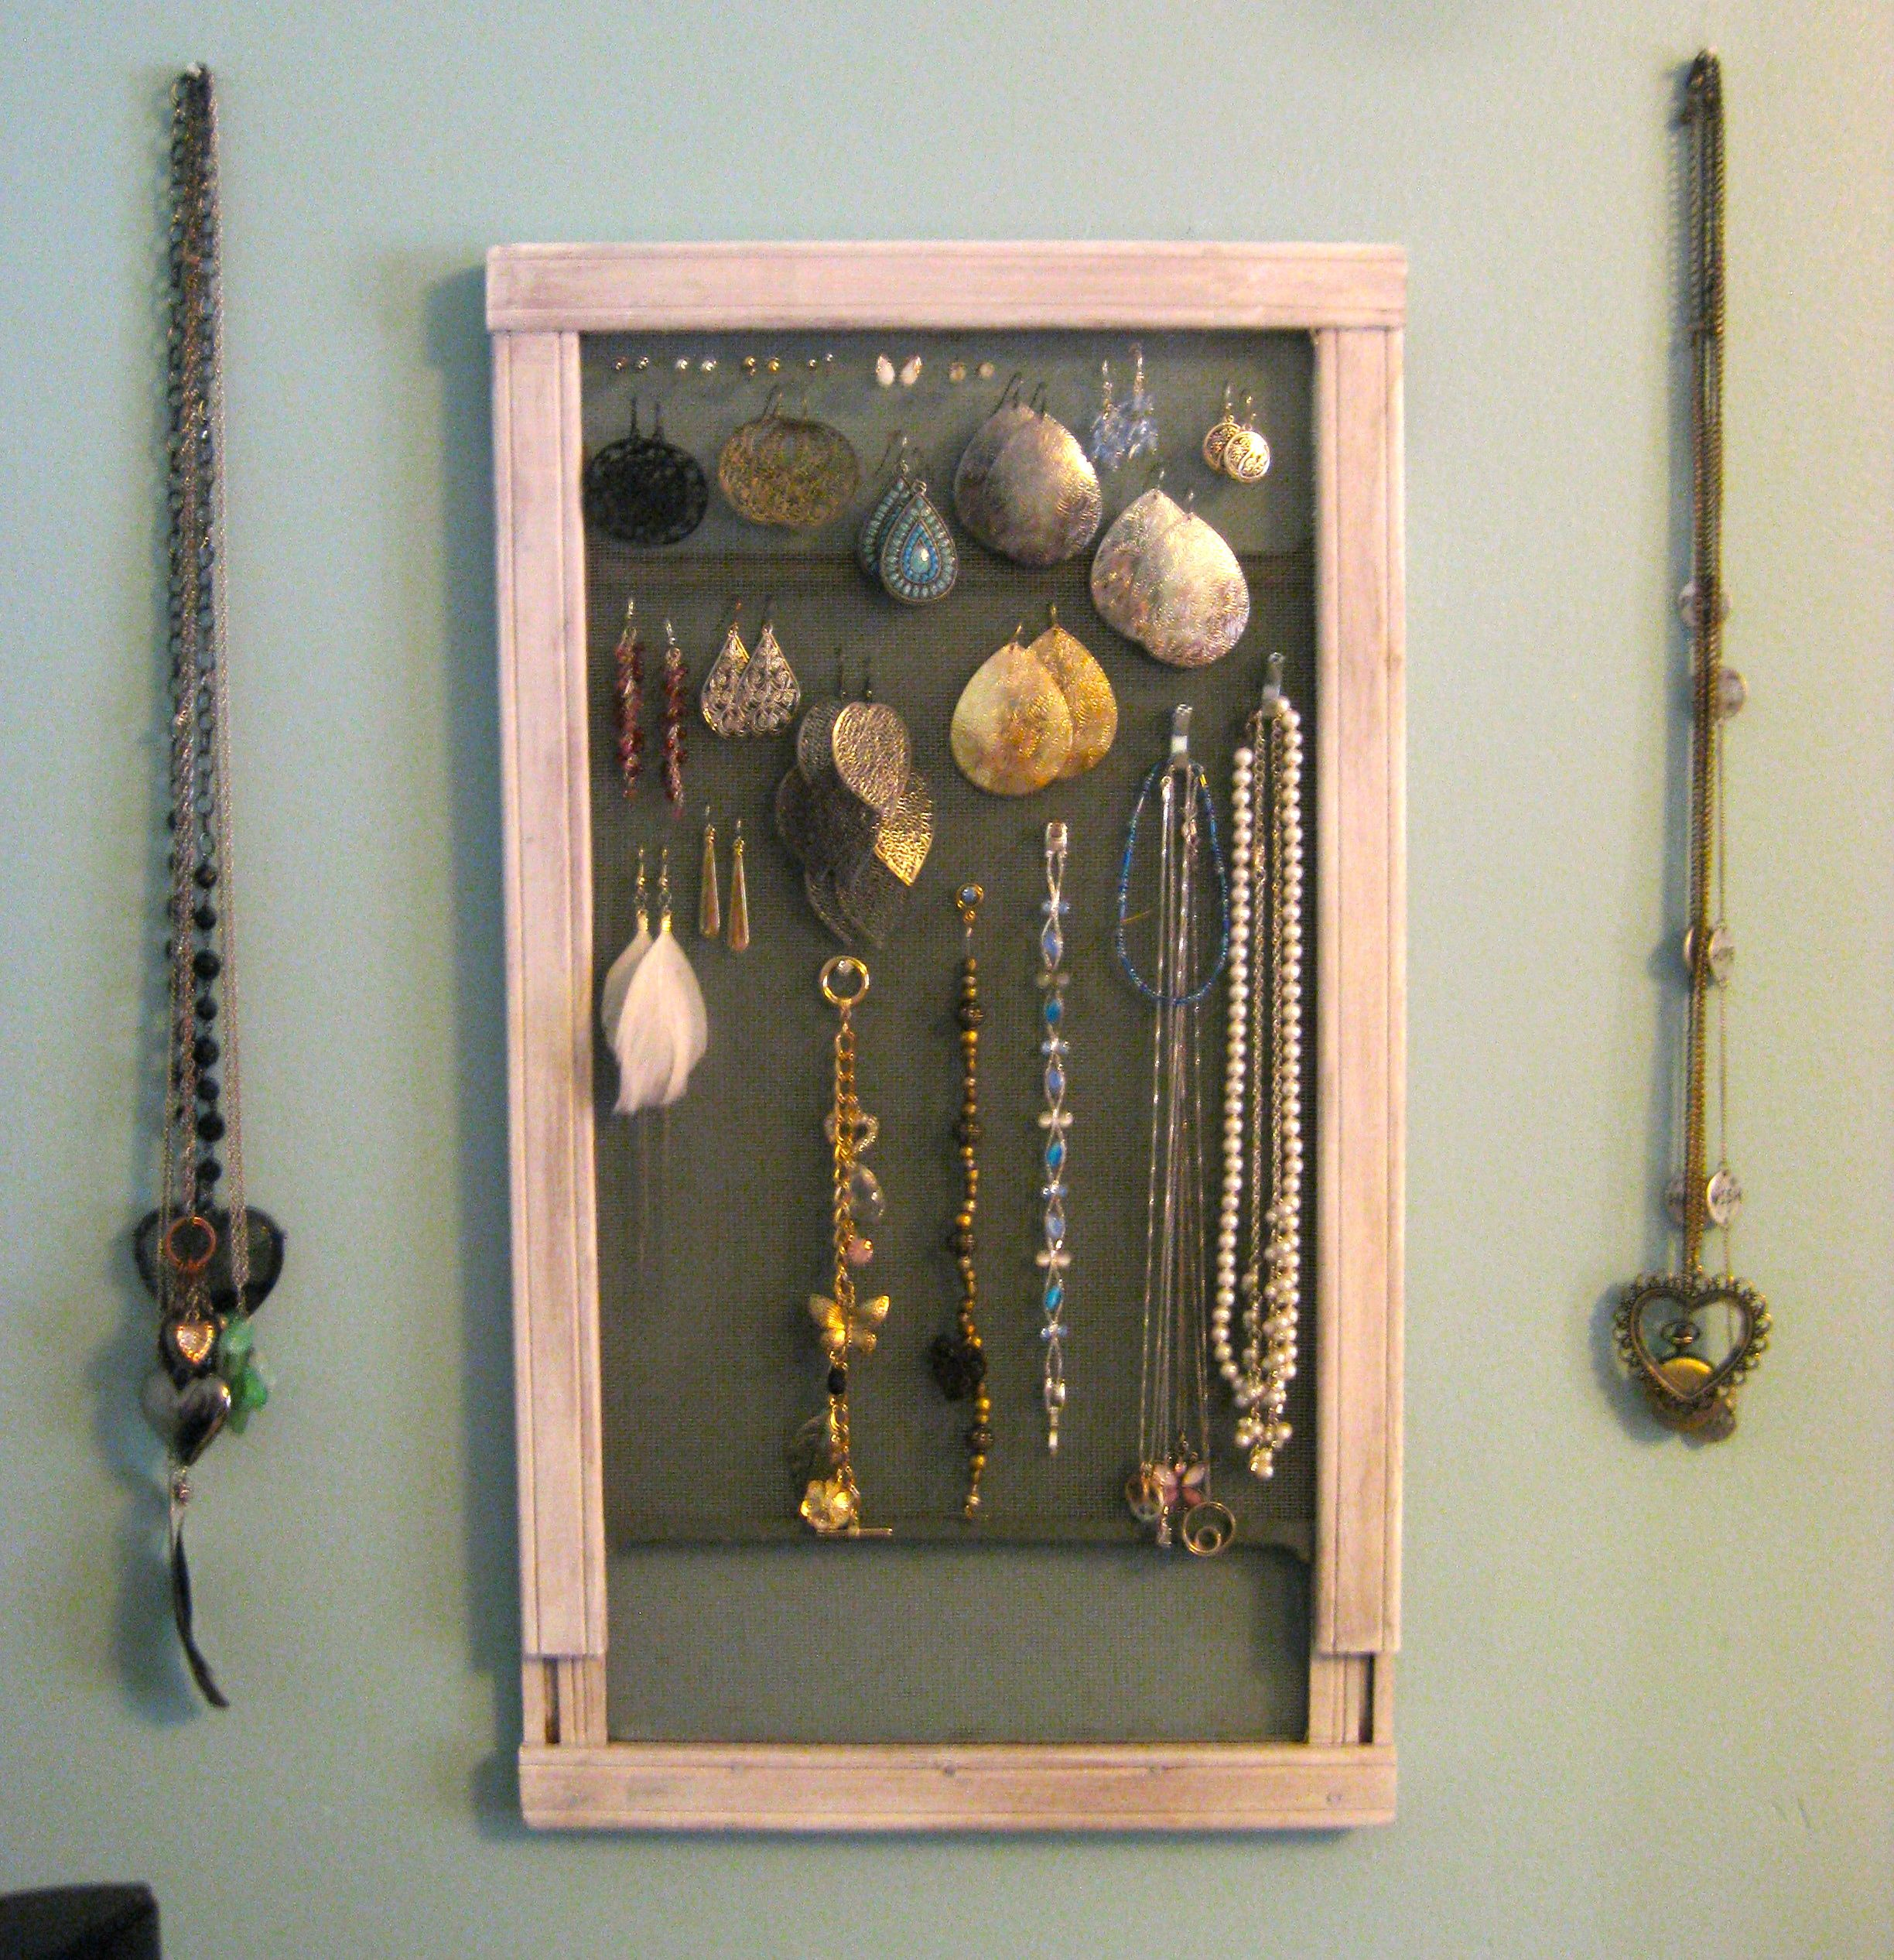 Pegboard Jewelry Display